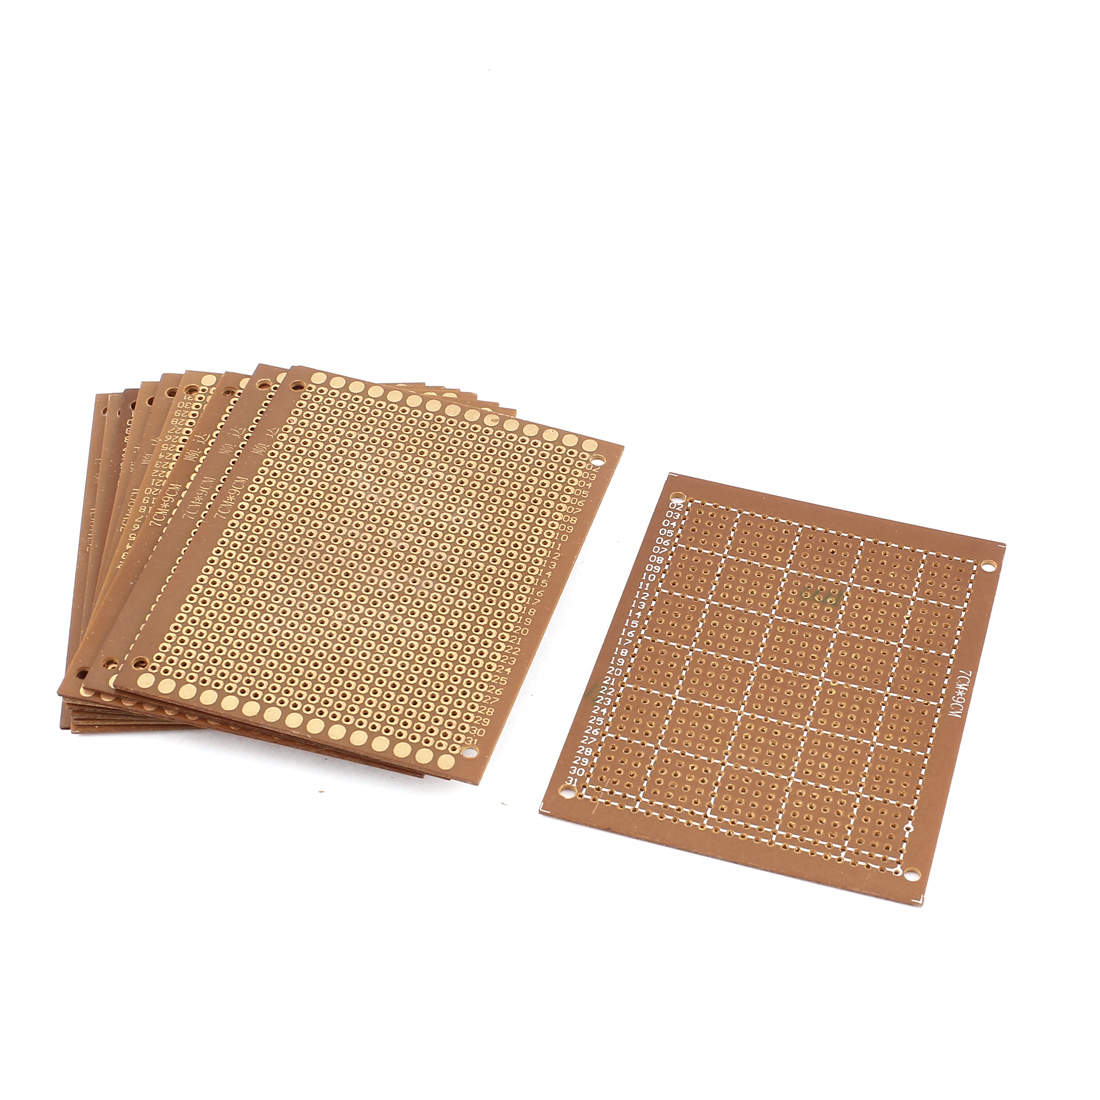 7 x 9cm Electronic DIY Prototype Paper Single Side PCB Universal Board Brown 10Pcs